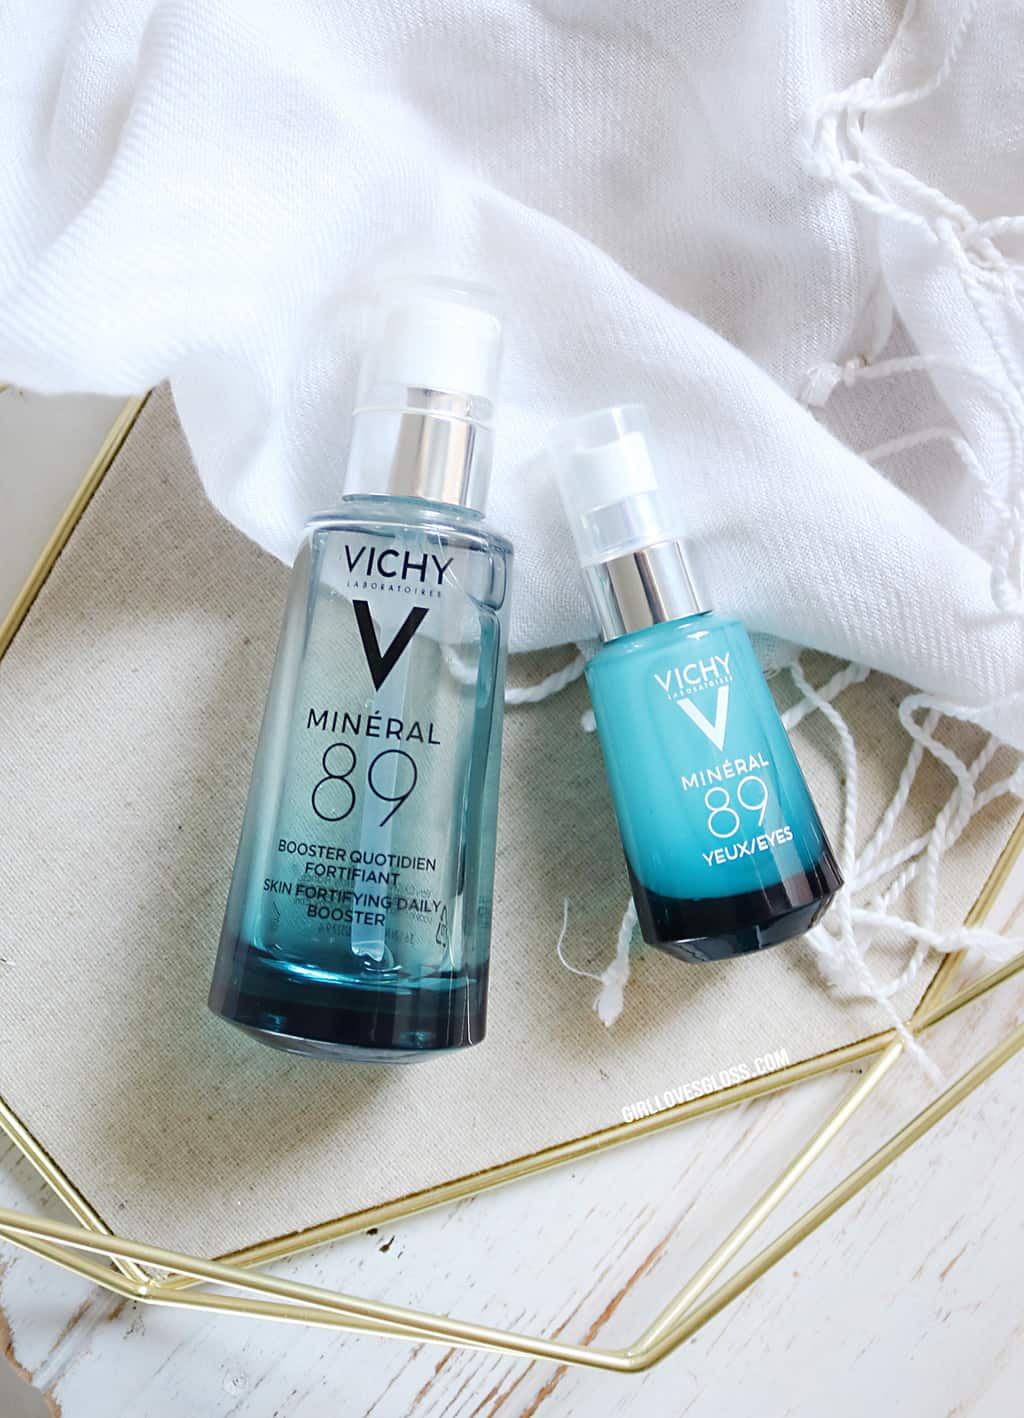 Vichy Mineral 89 Face and Eye Serum